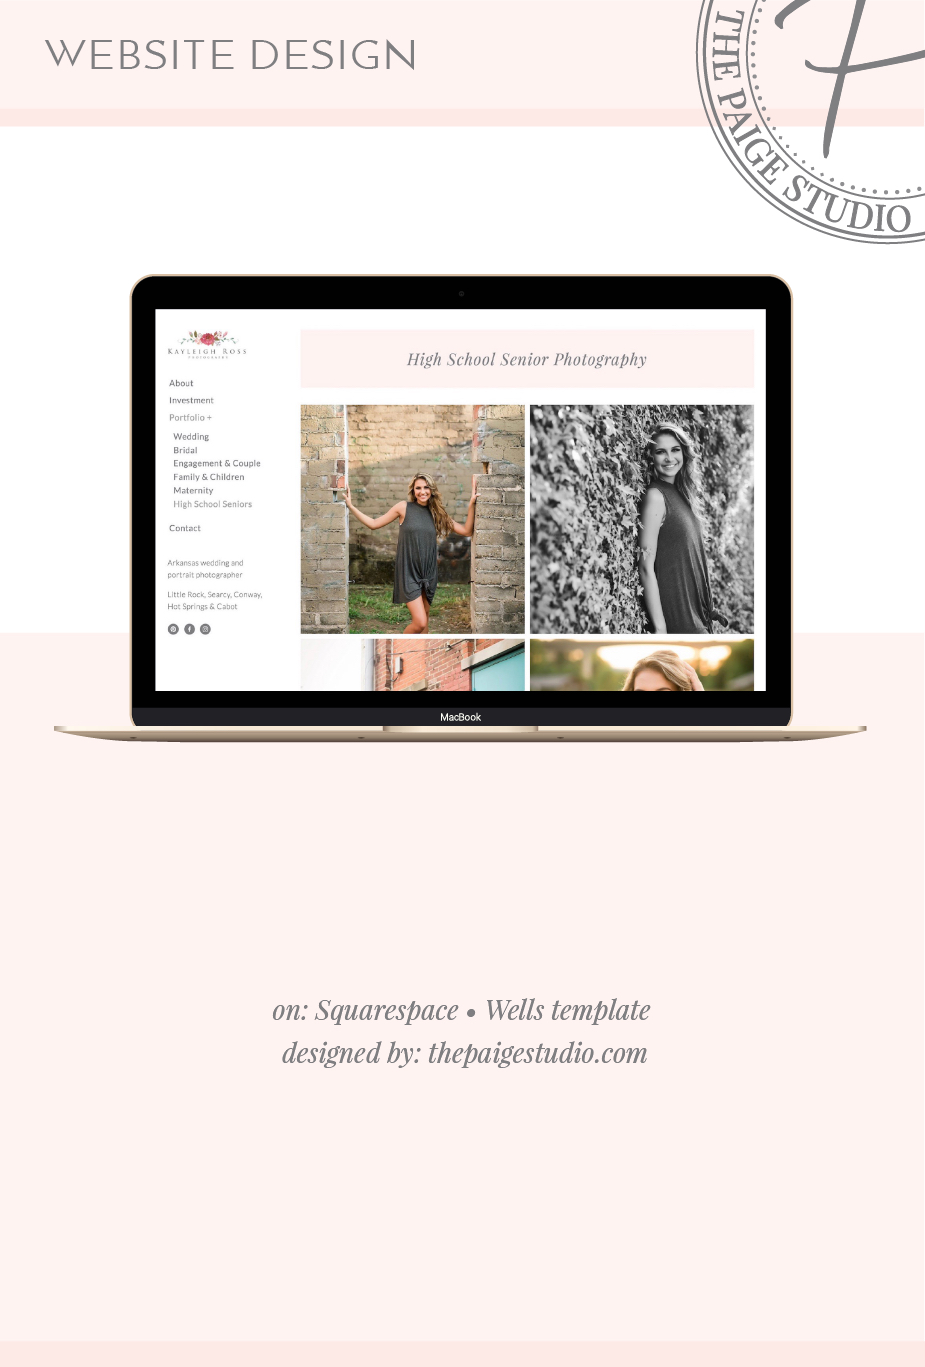 Photographer website designed by The Paige Studio on Squarespace, Wells template